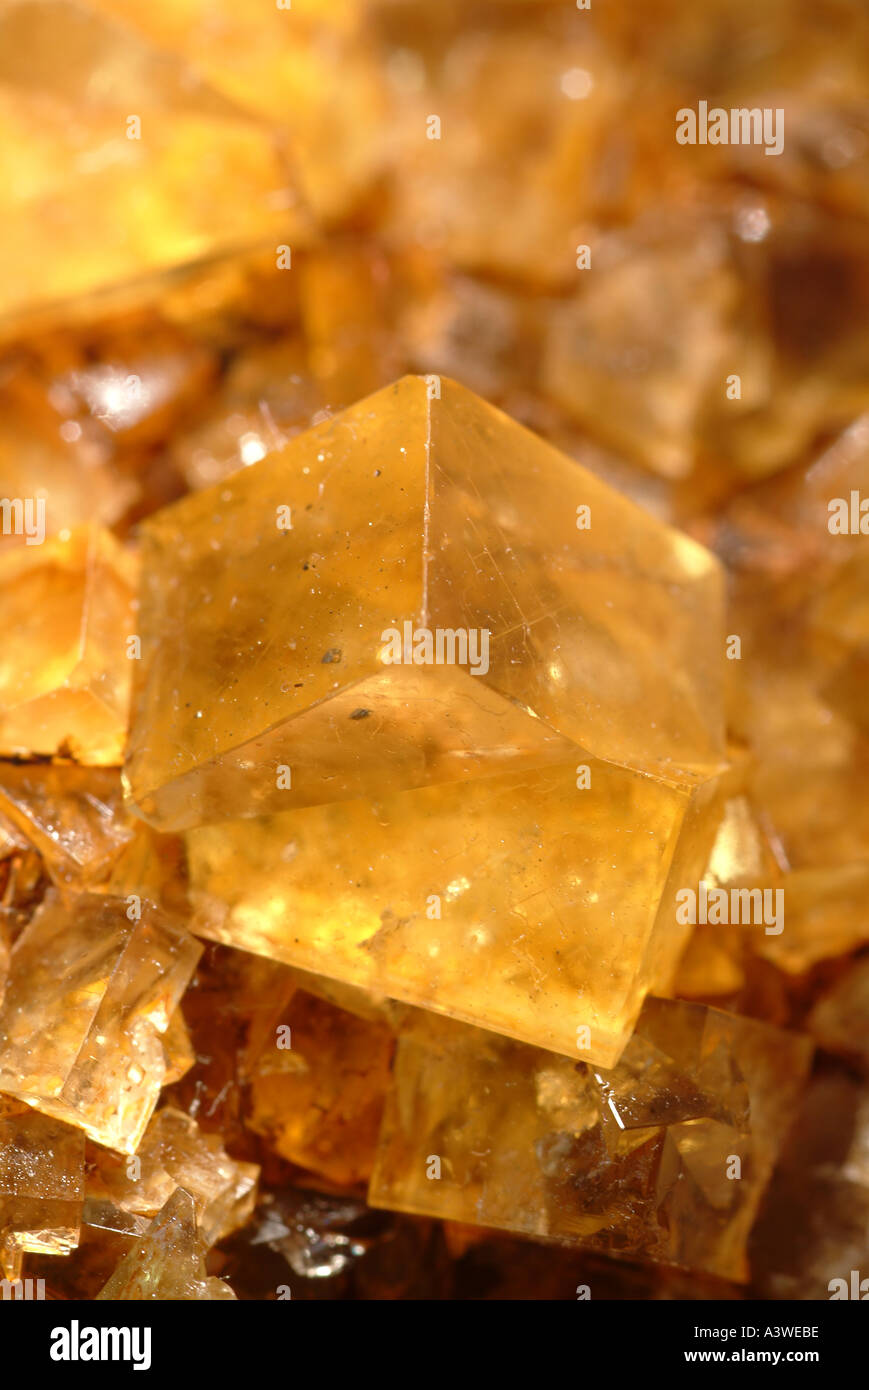 Mineral Fluorite, Bright transparent crystals showing twinning, Hilton mine, Scordale, Cumbria, England - Stock Image